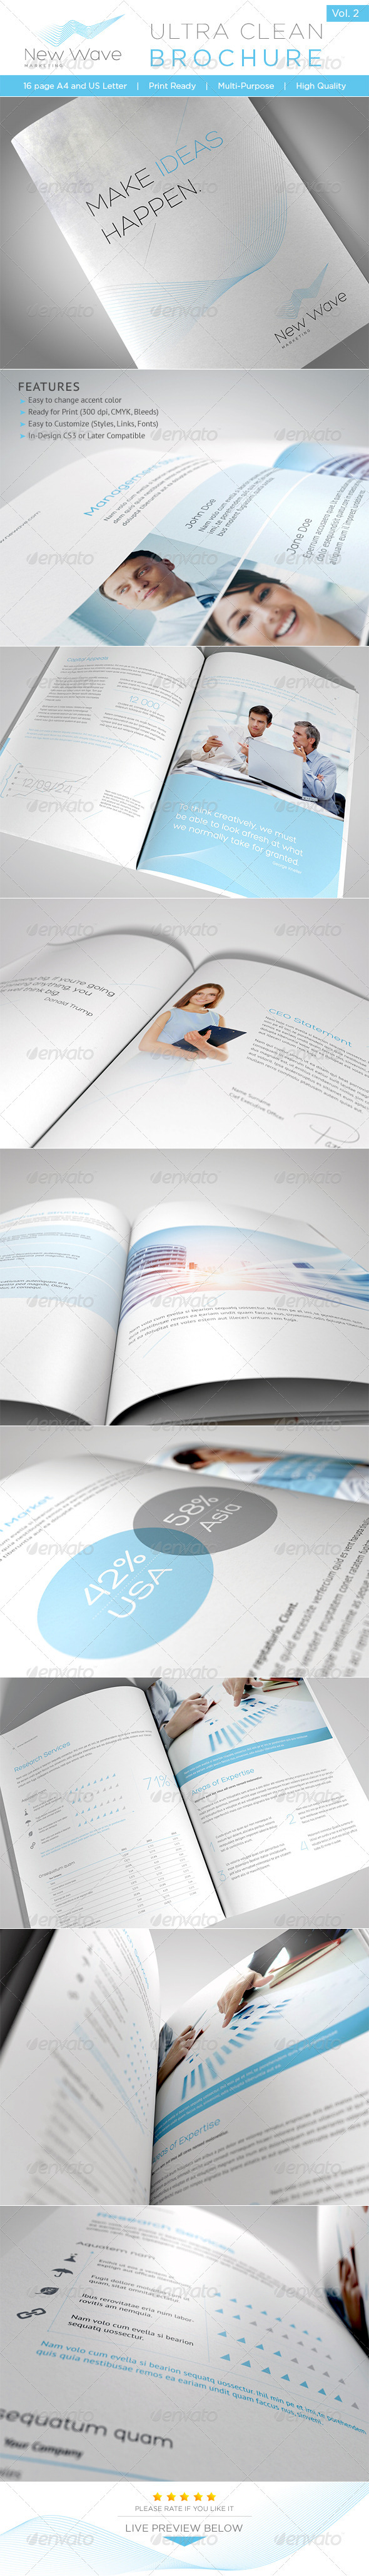 Ultra Clean Brochure Vol. 2 - Brochures Print Templates